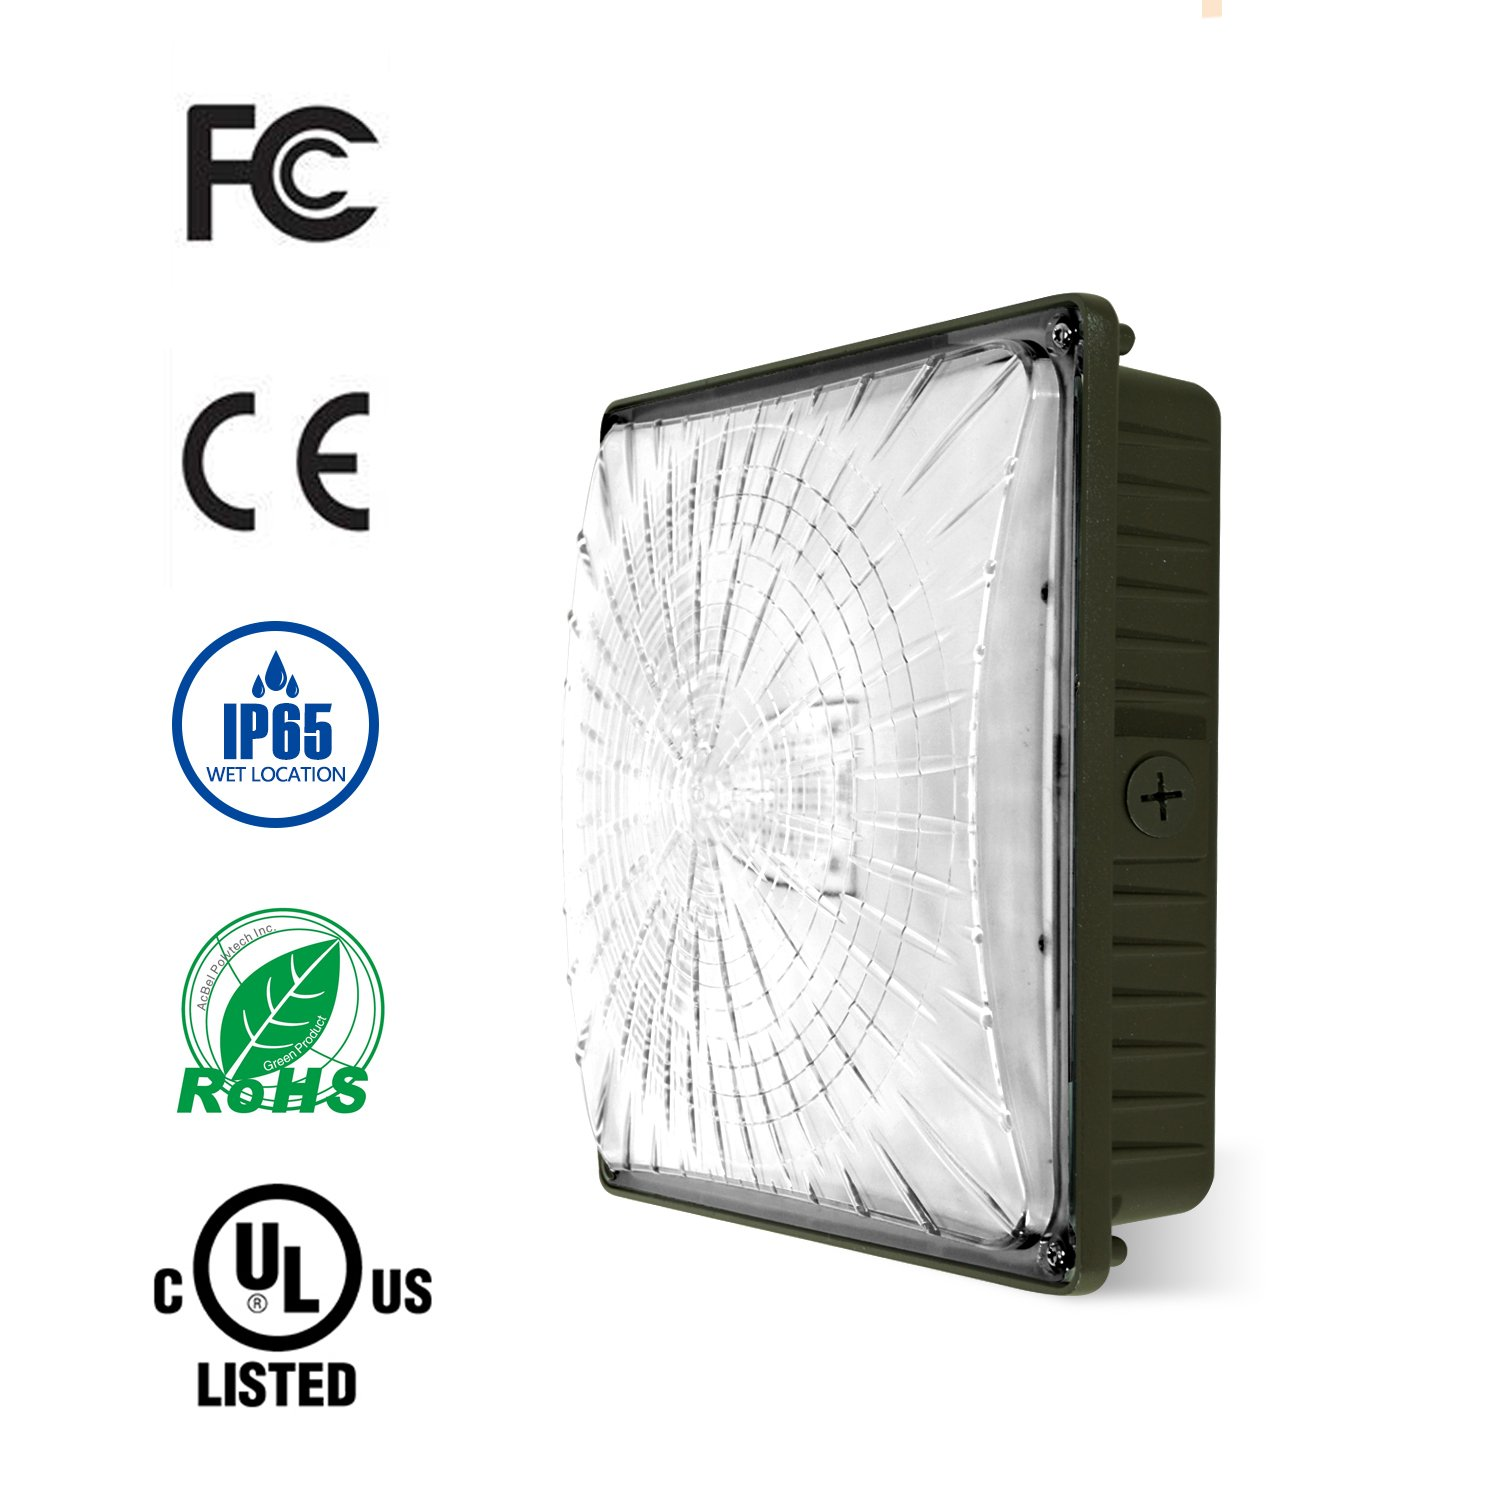 EVE 45W LED Canopy Light , 175-200W HPS/HID Replacement, 5000K Daylight White, 0-10V Dimmable 5300 Lumens, 10'' x 10'', IP65 Waterproof and Outdoor Rated, DLC-Qualified and UL-Listed